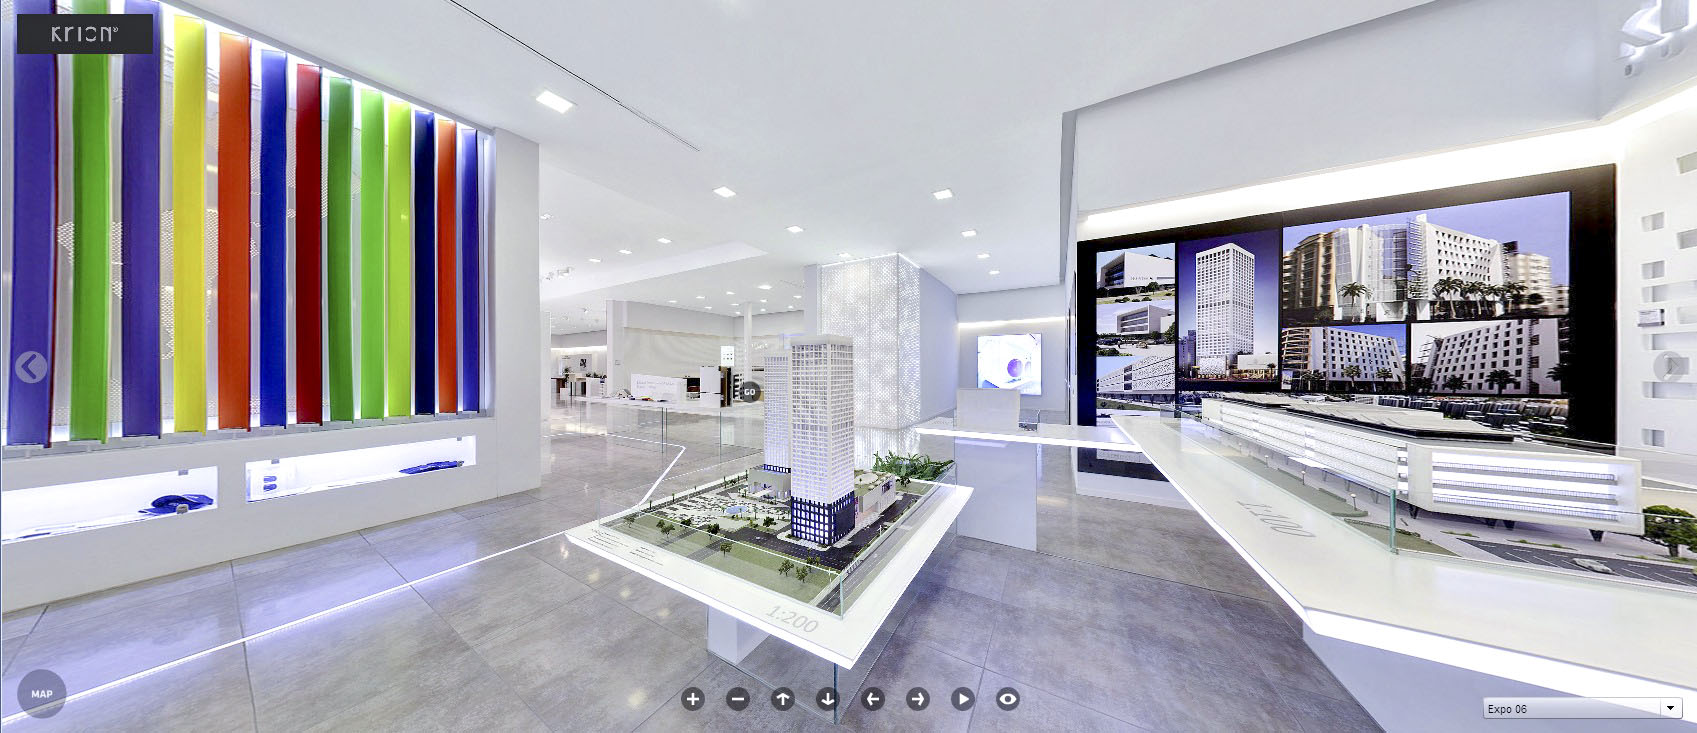 The Virtual Tour of the 2014 KRION® Showroom is now available